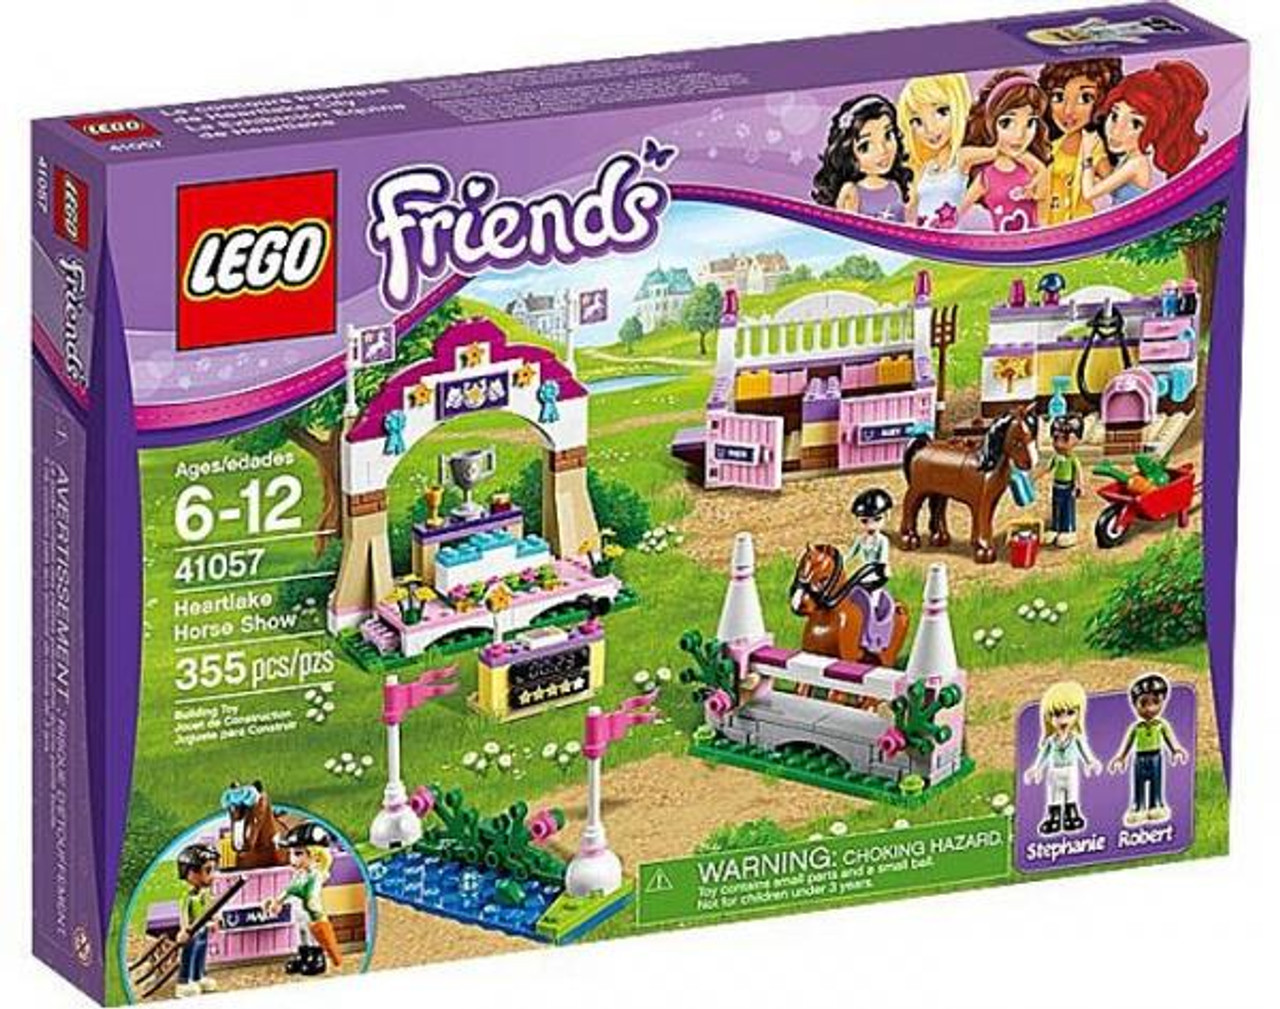 LEGO Friends Heartlake Horse Show Exclusive Set #41057